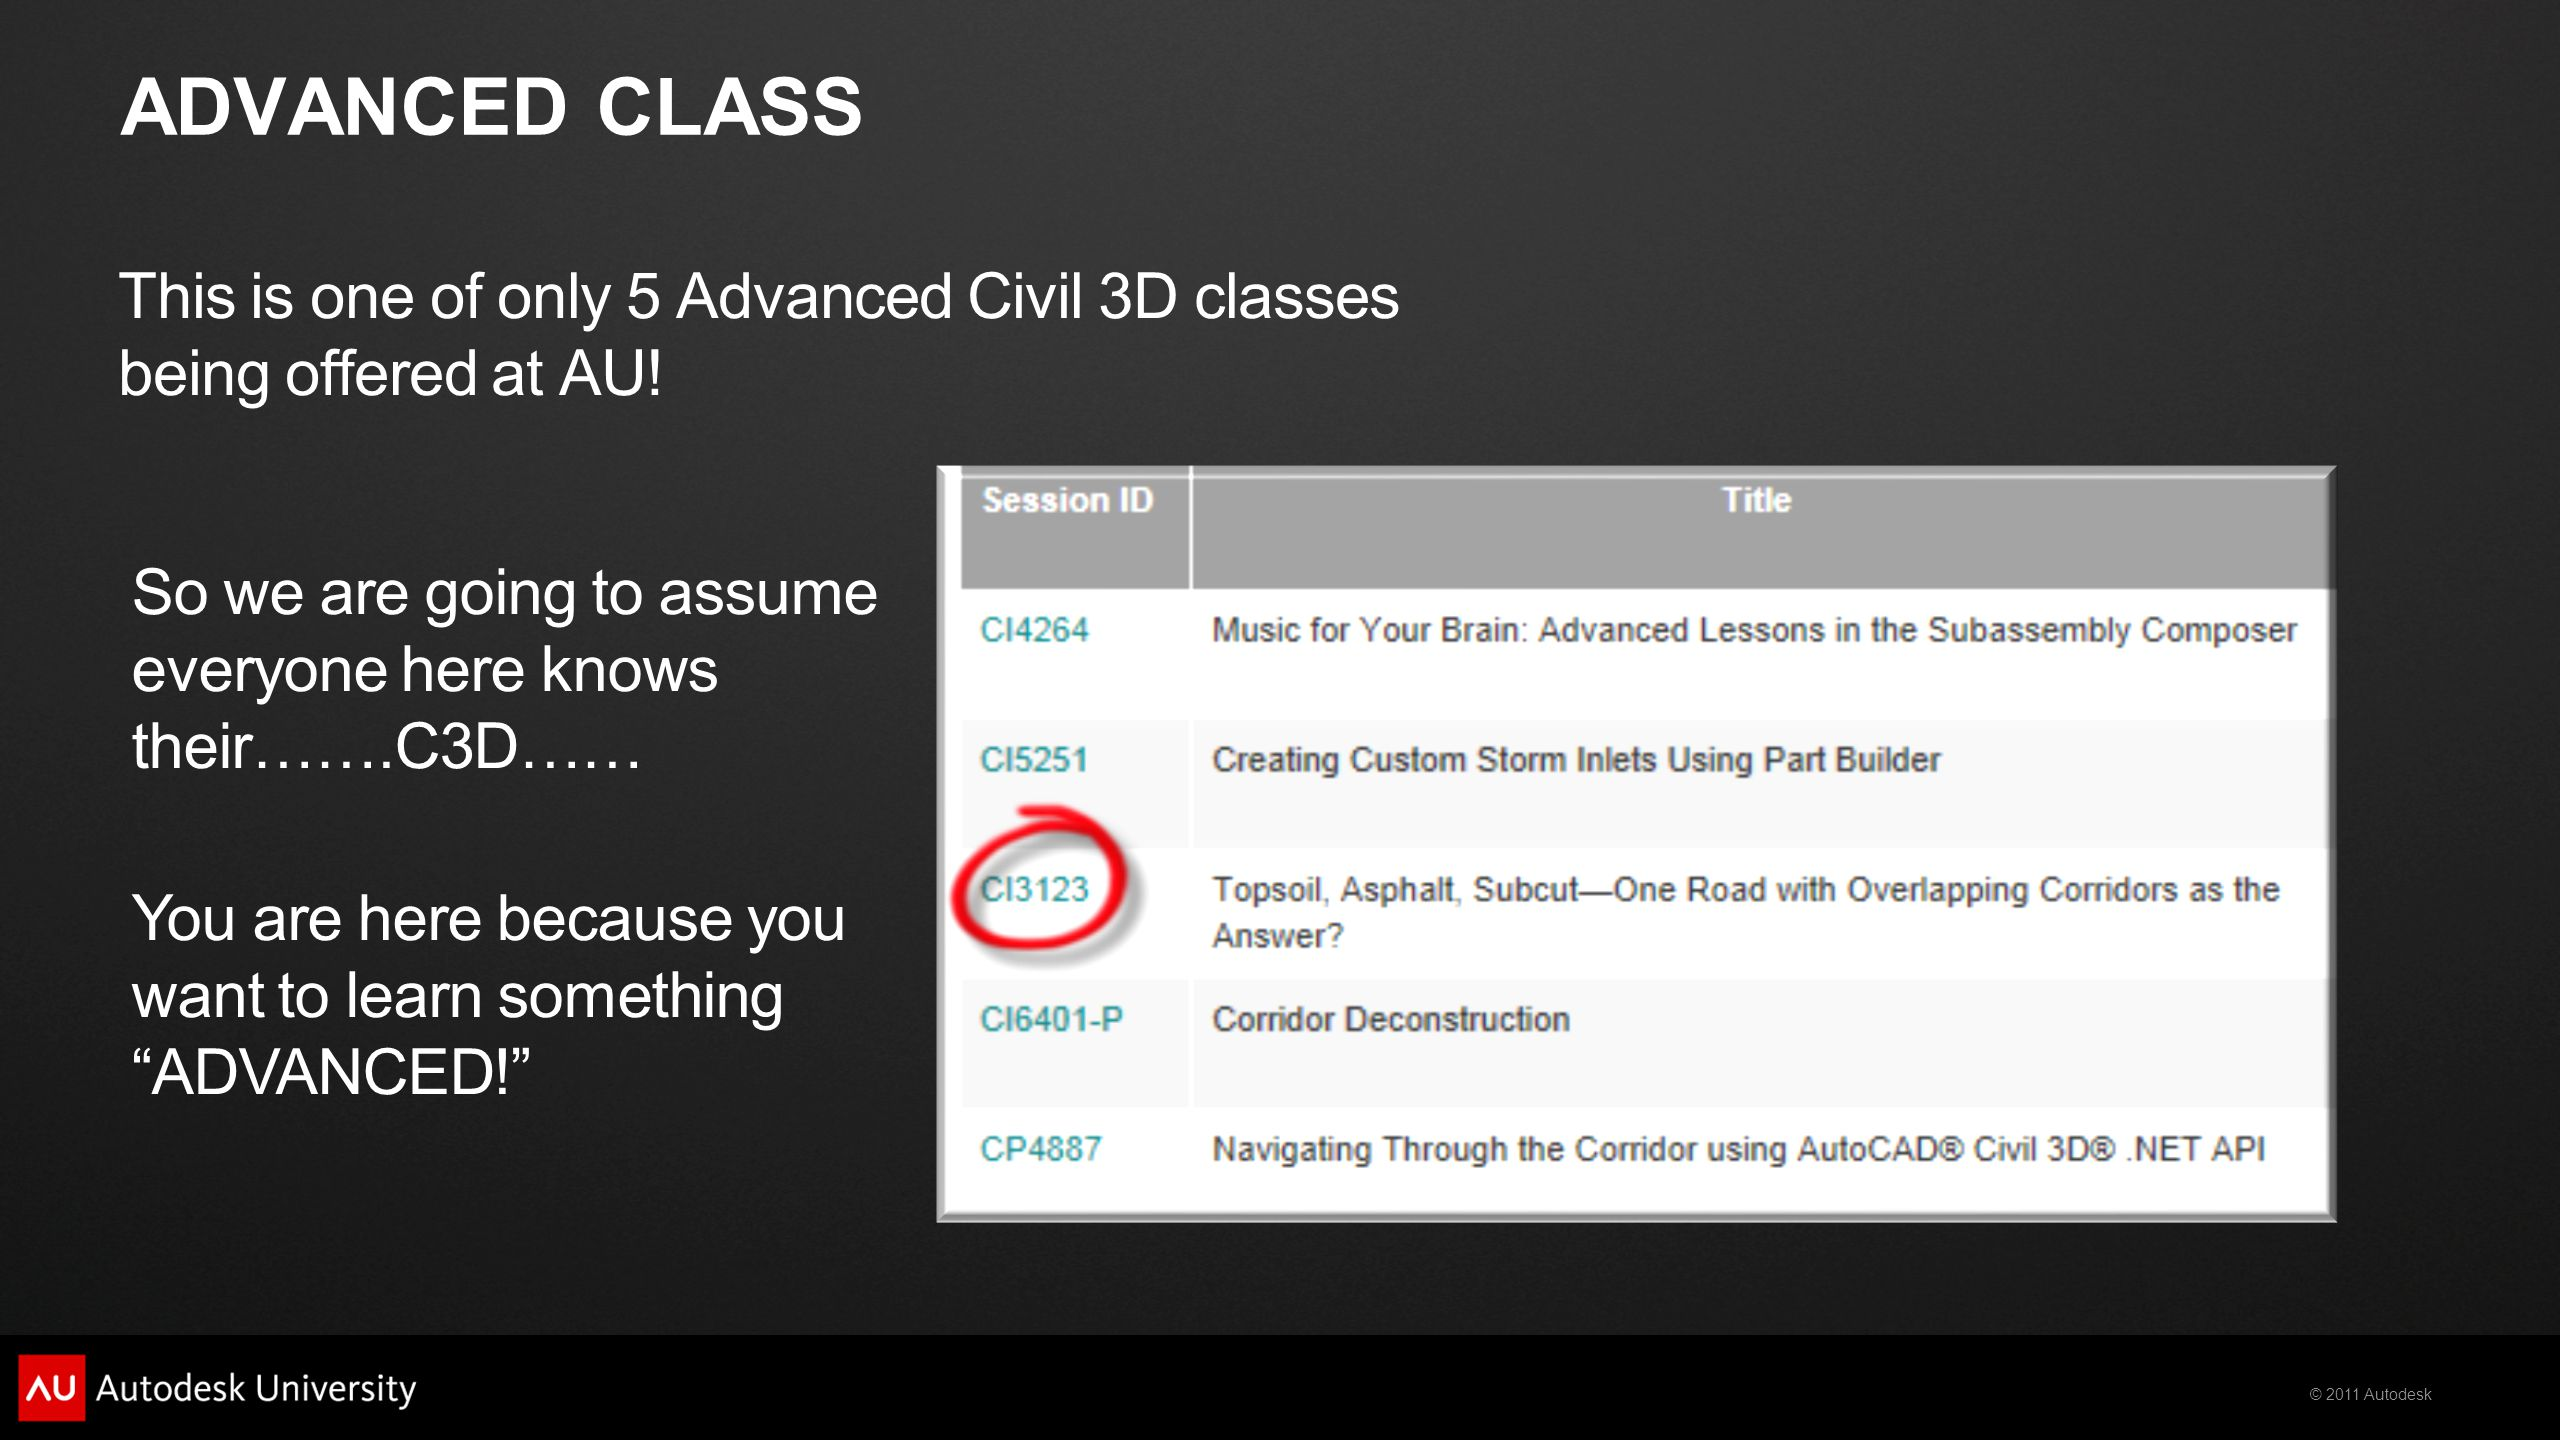 ADVANCED CLASS This is one of only 5 Advanced Civil 3D classes being offered at AU! So we are going to assume everyone here knows their…….C3D……